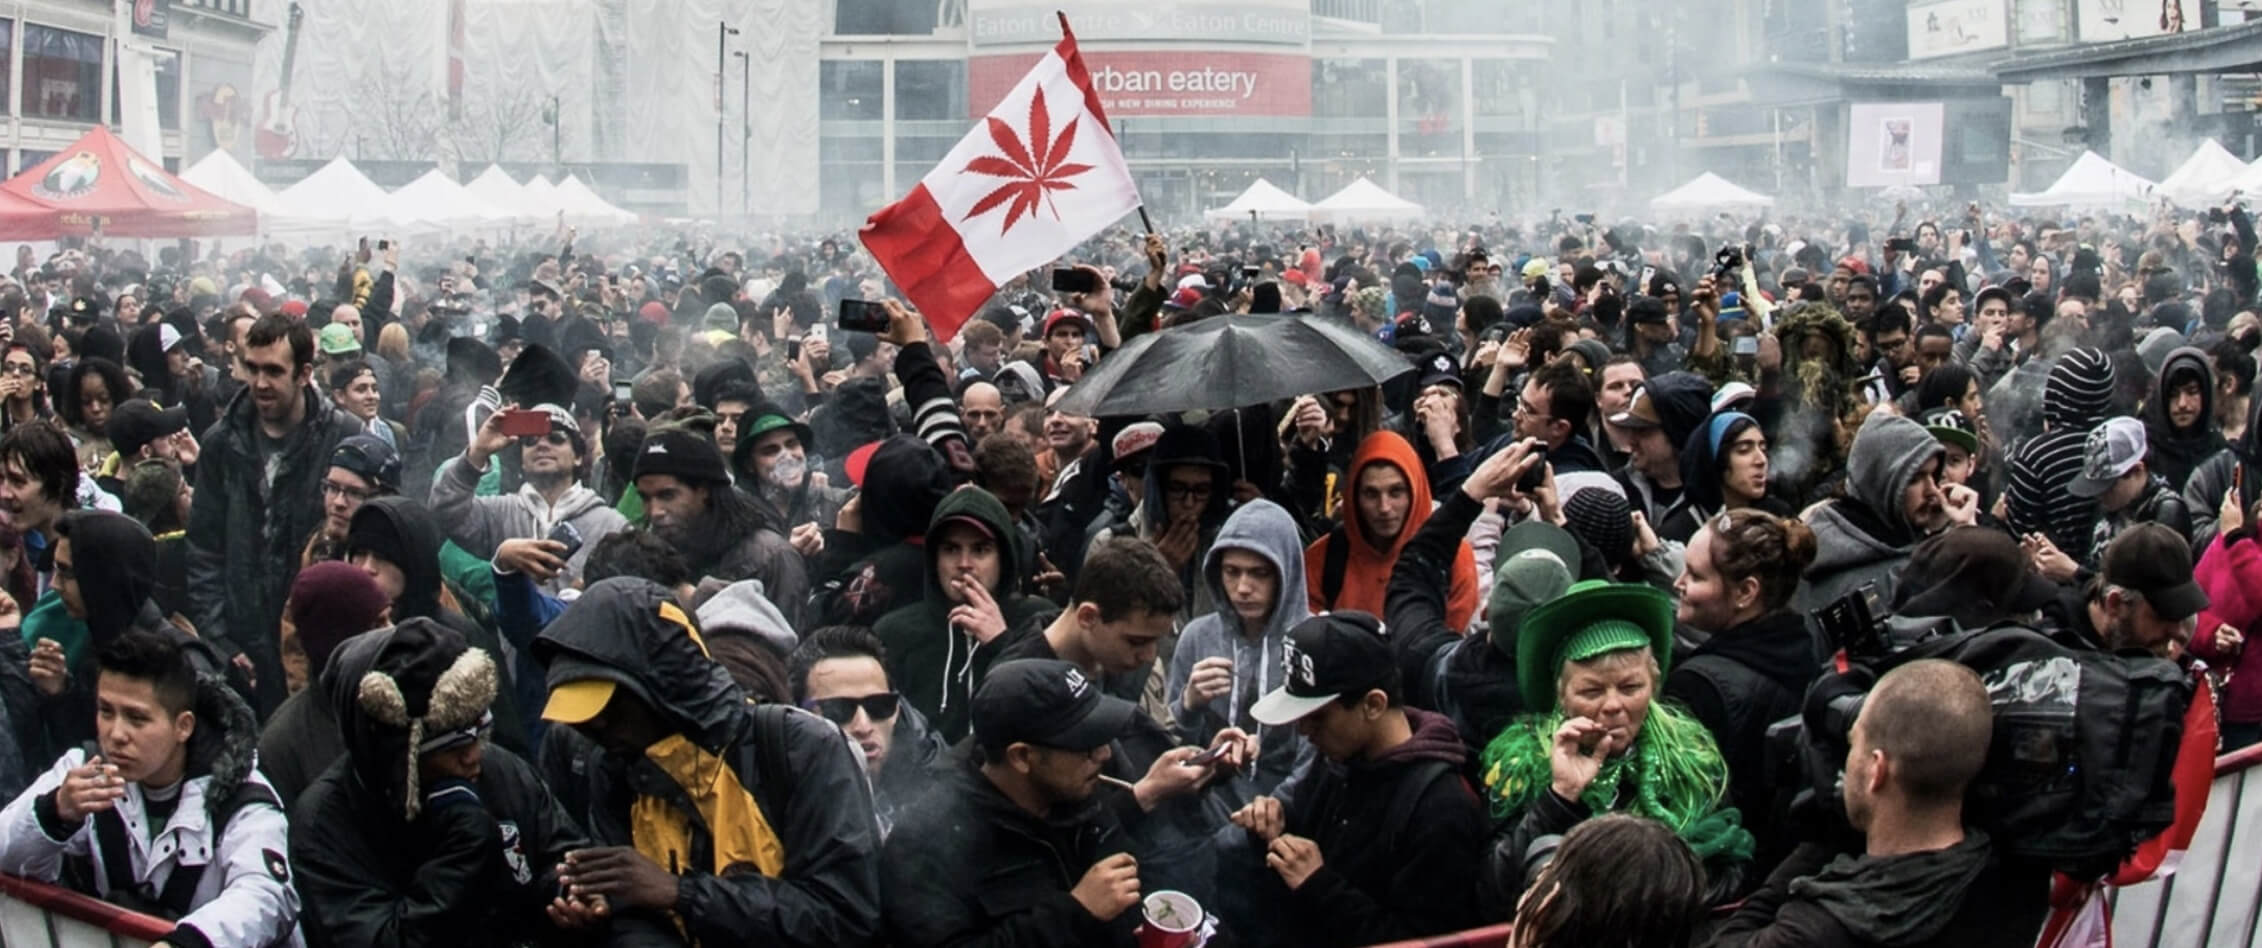 420celebration - What did 15000 Calgarians have to say about legalizing marijuana?